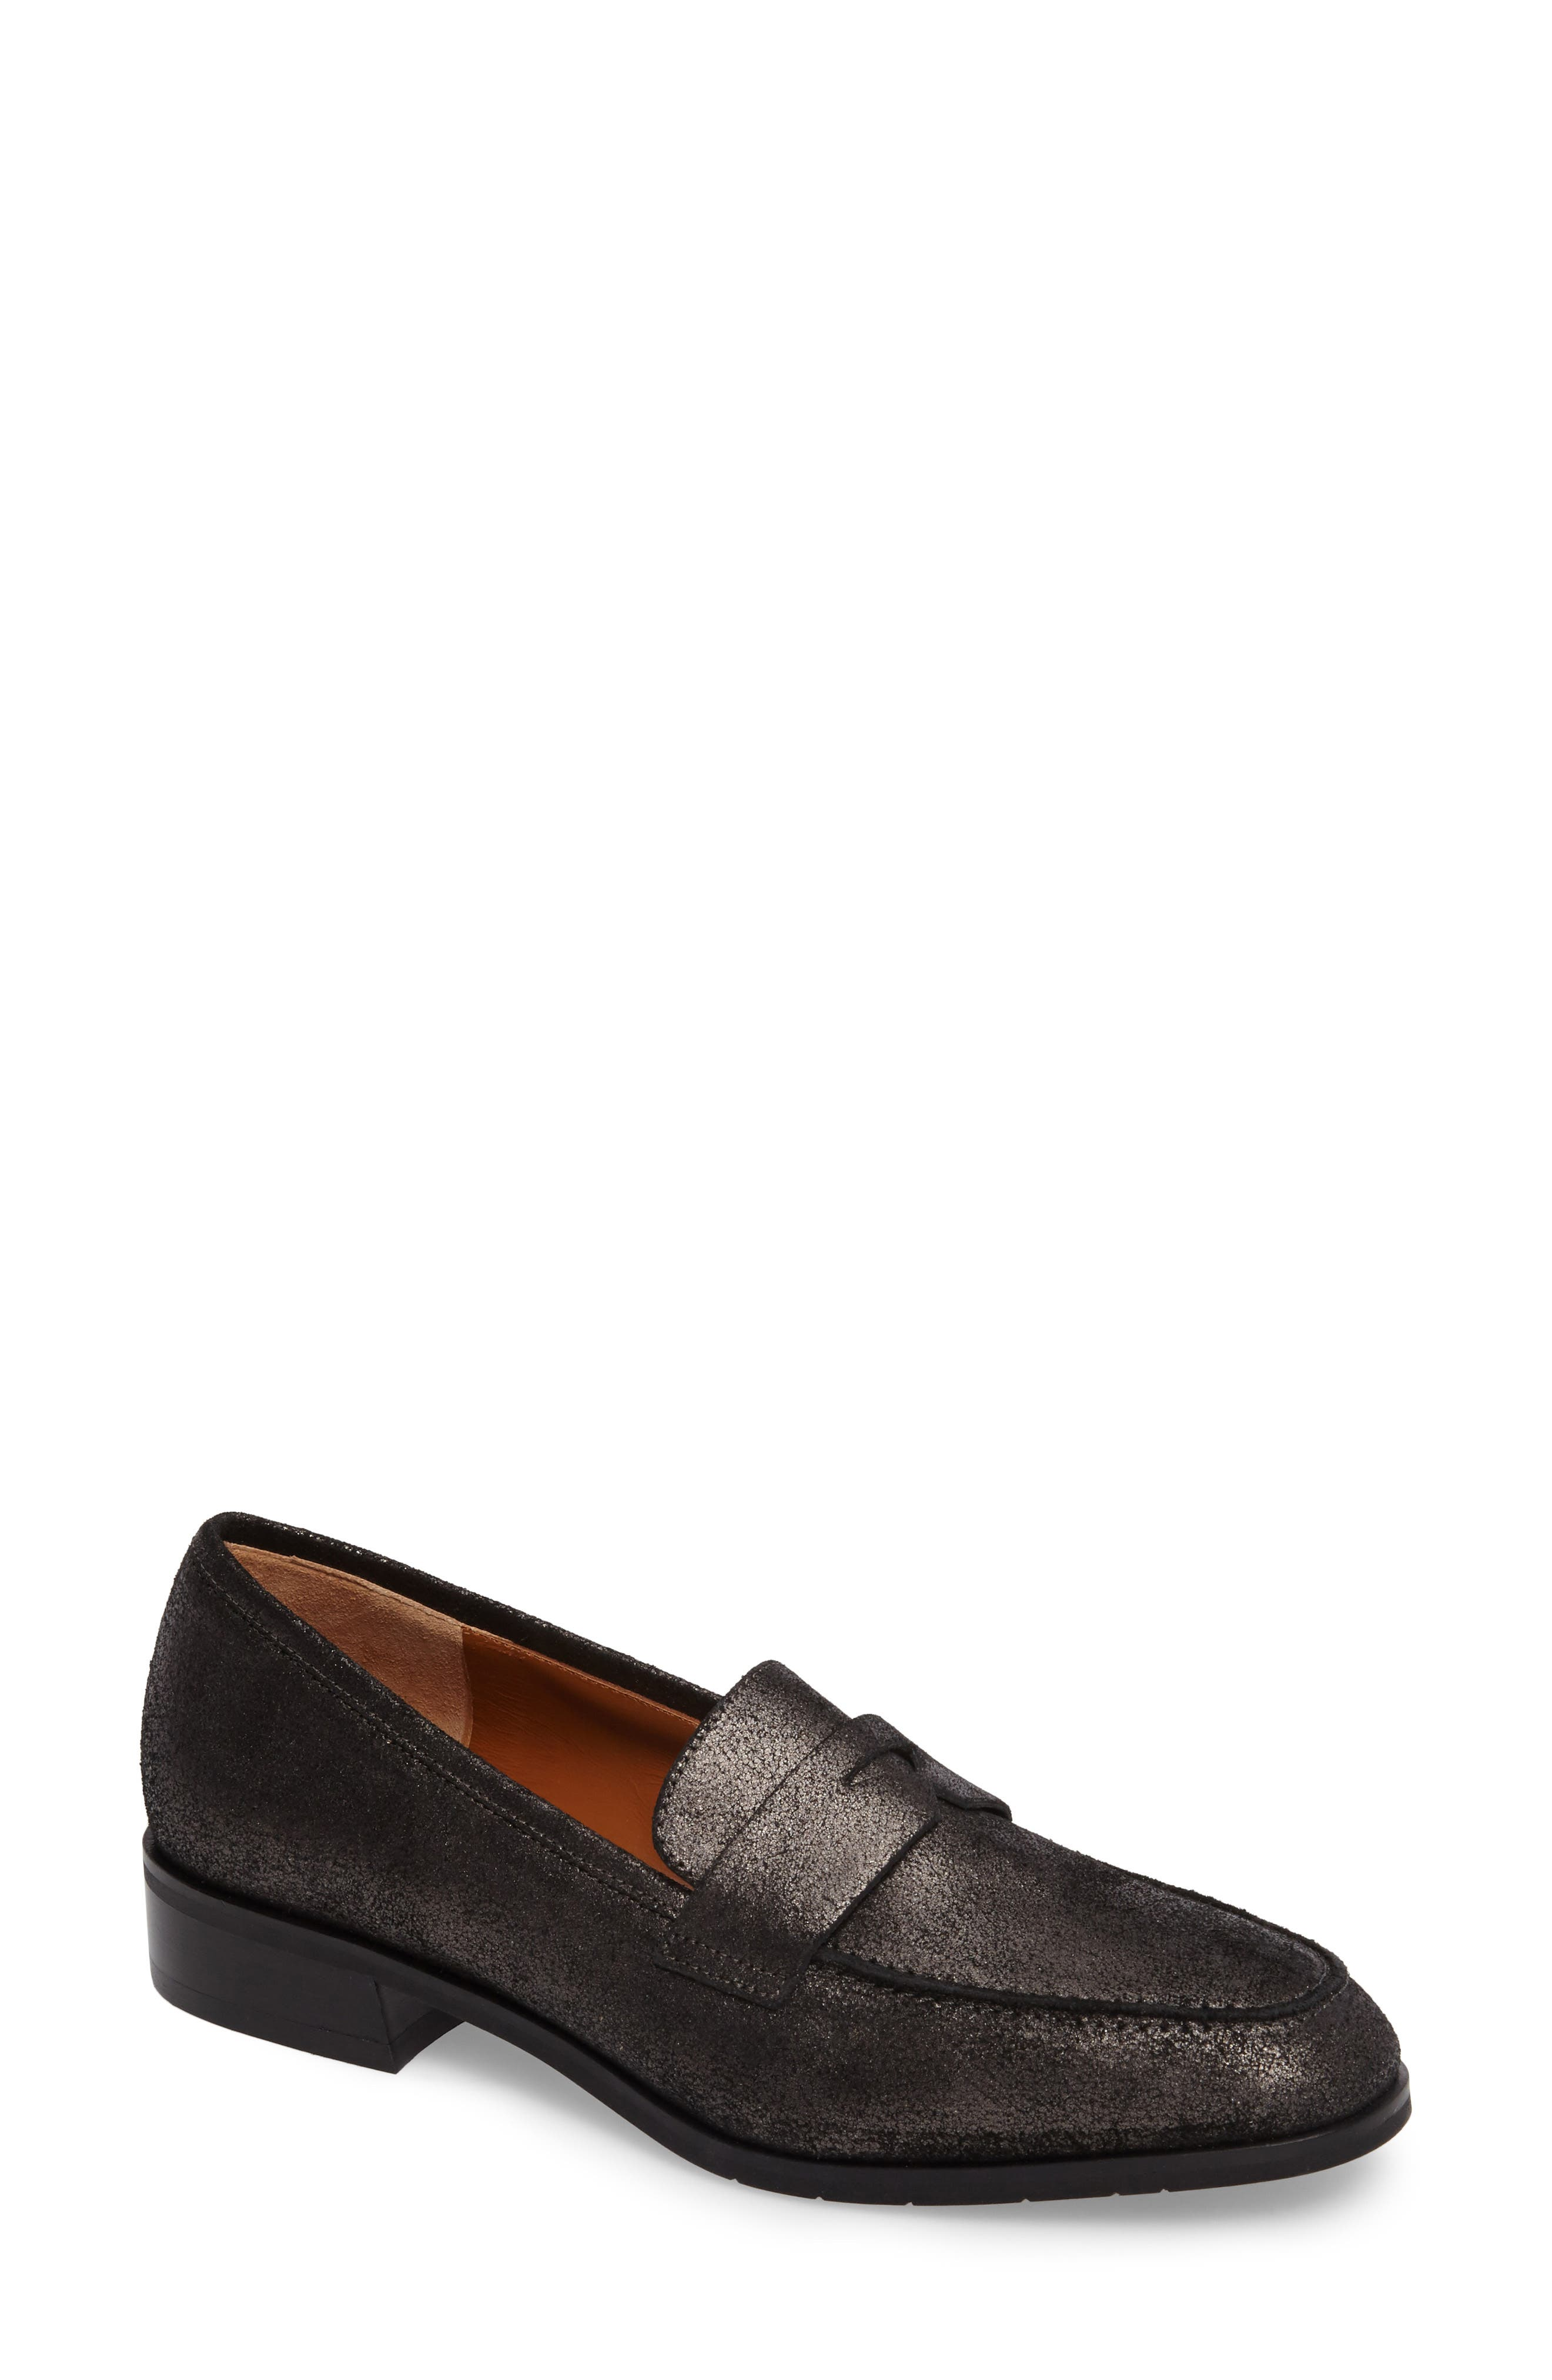 Alternate Image 1 Selected - Aquatalia Sharon Weatherproof Penny Loafer (Women)